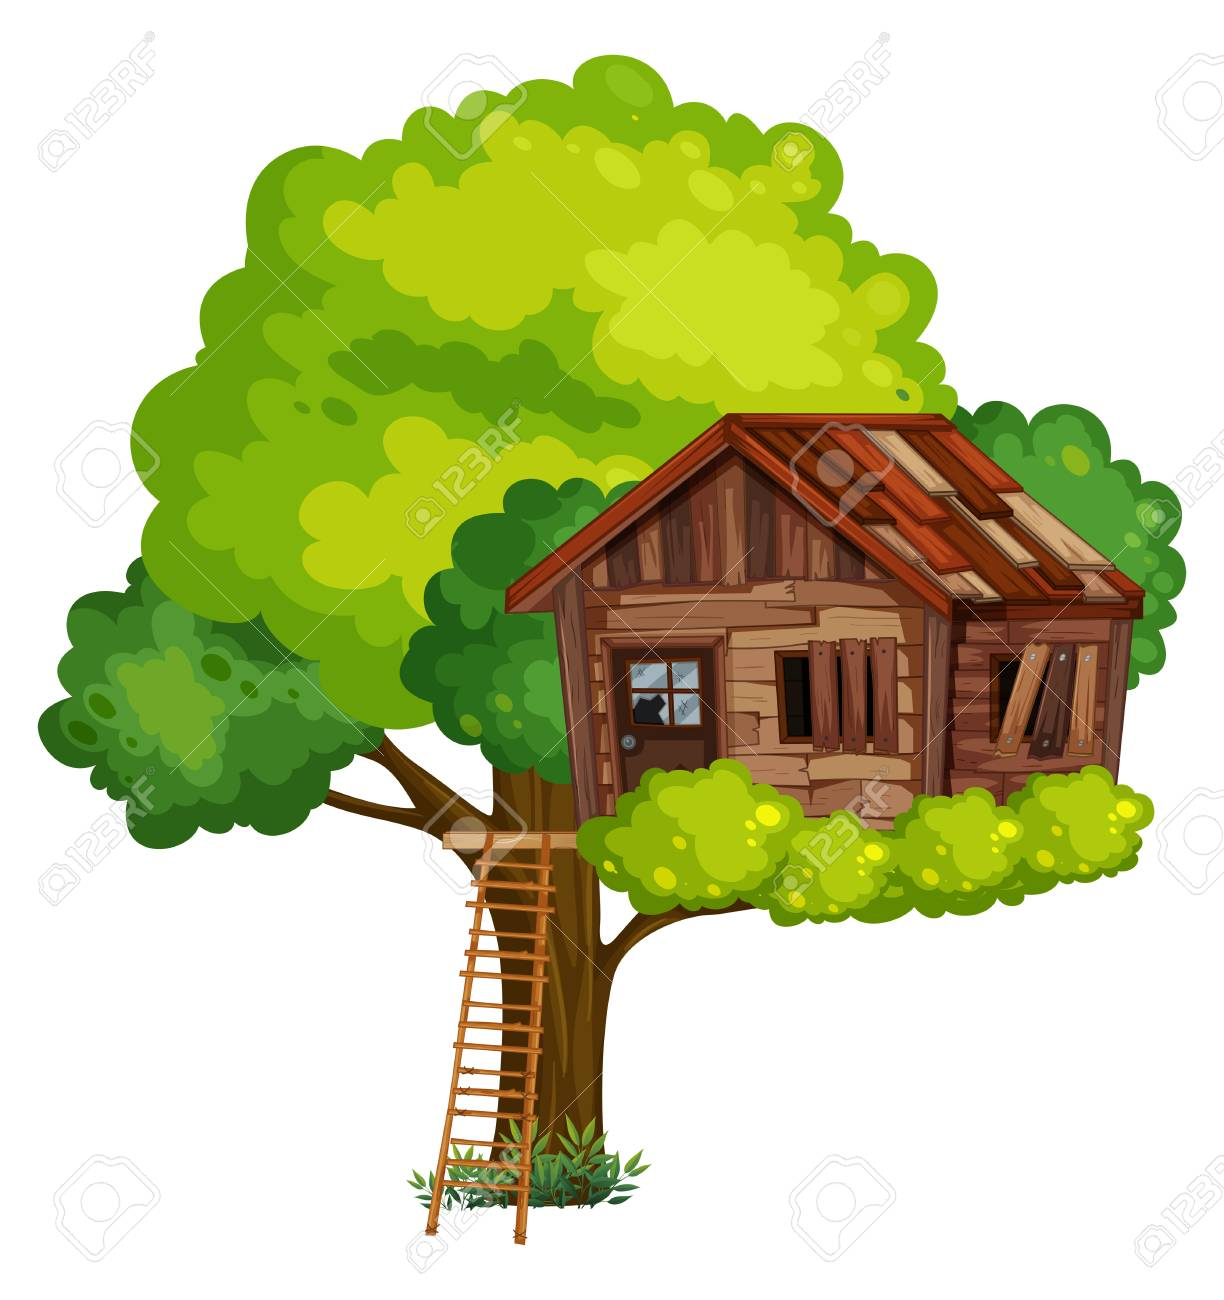 old treehouse made of wood illustration royalty free cliparts rh 123rf com free magic tree house clipart free magic tree house clipart